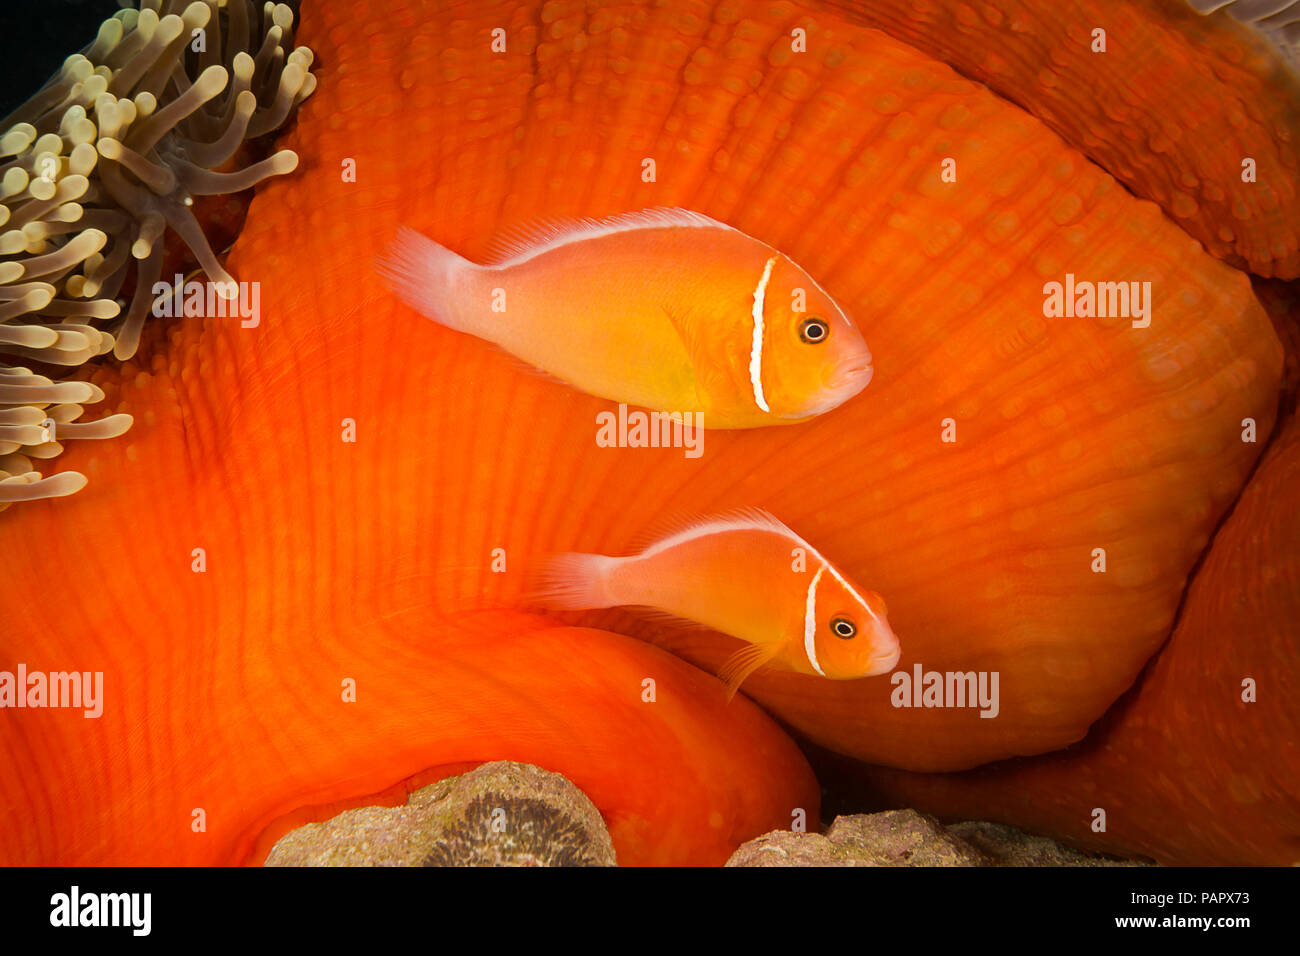 This common anemonefish, Amphiprion perideraion, is most often found associated with the anemone, Heteractis magnifica, as pictured here. The larger o - Stock Image